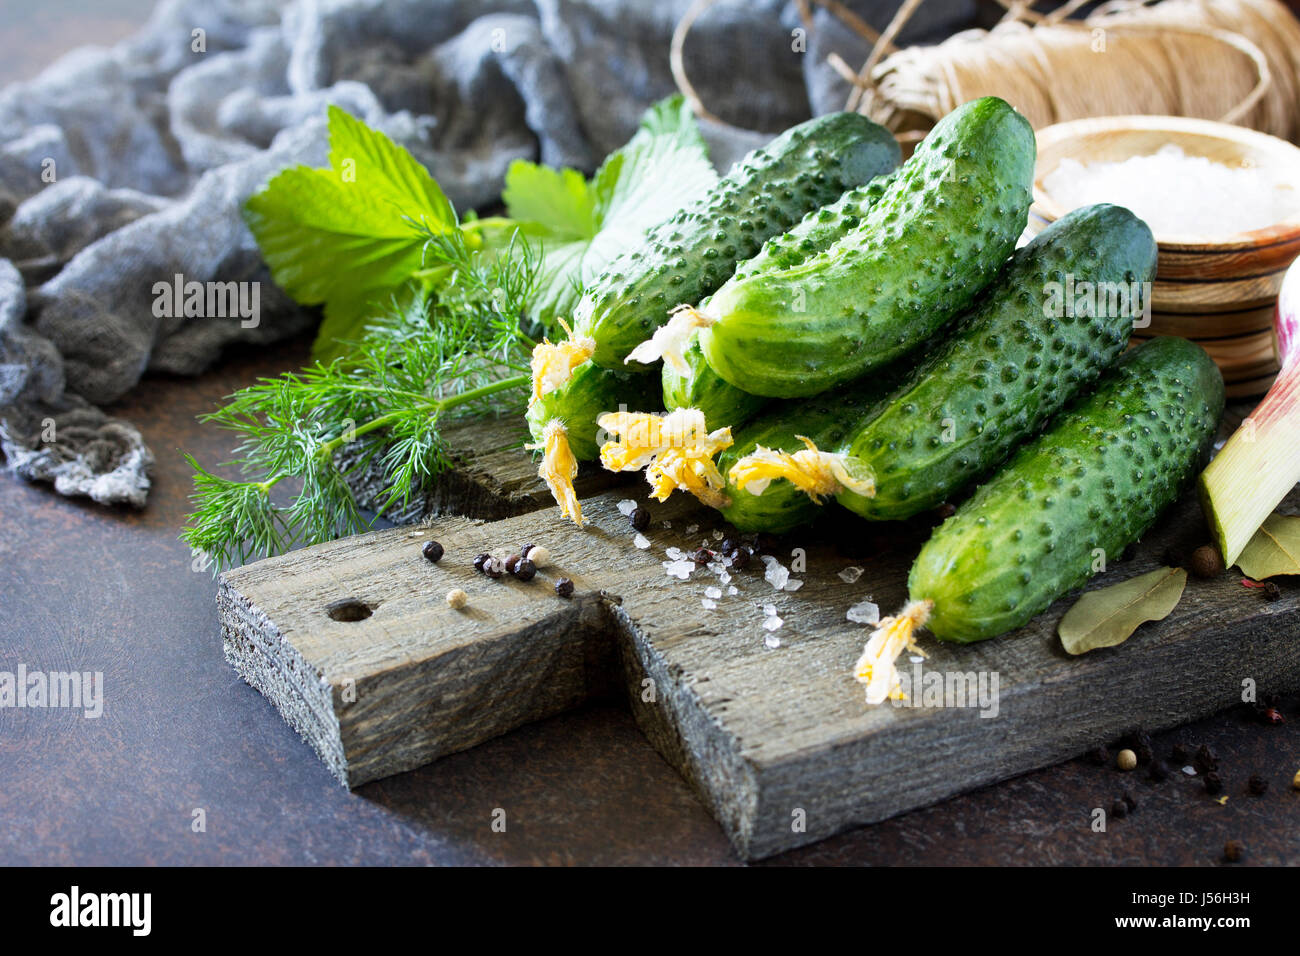 Pickled immagini pickled fotos stock alamy for Case di tronchi freschi